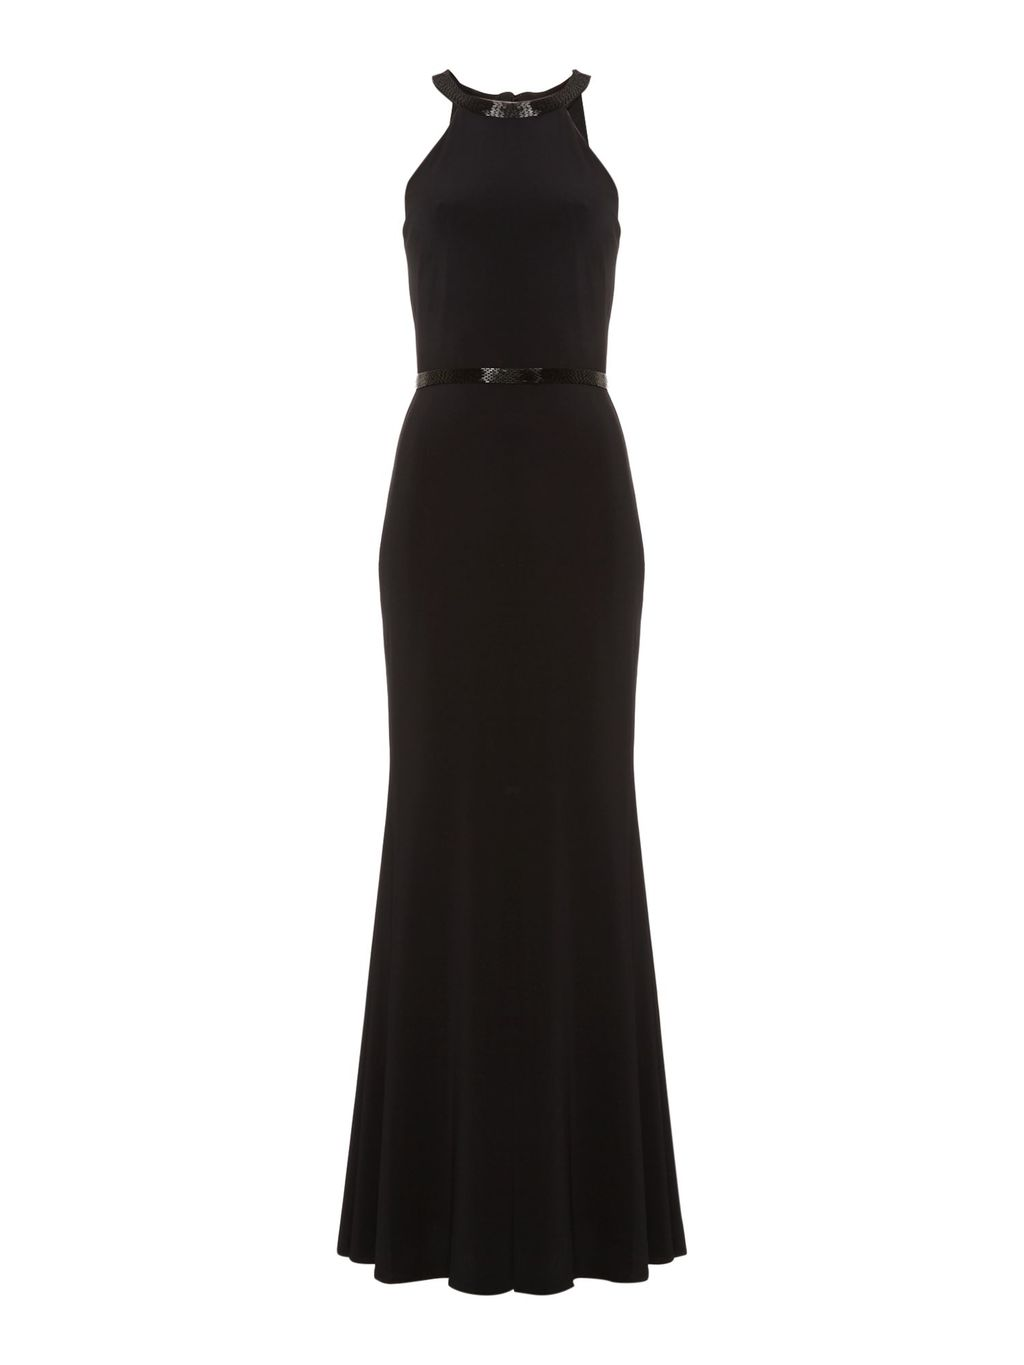 Jersey Gown With Halter Neck, Black - pattern: plain; sleeve style: sleeveless; length: ankle length; predominant colour: black; fit: fitted at waist & bust; fibres: polyester/polyamide - 100%; occasions: occasion; style: fishtail; sleeve length: sleeveless; pattern type: fabric; texture group: jersey - stretchy/drapey; season: s/s 2016; neckline: high halter neck; wardrobe: event